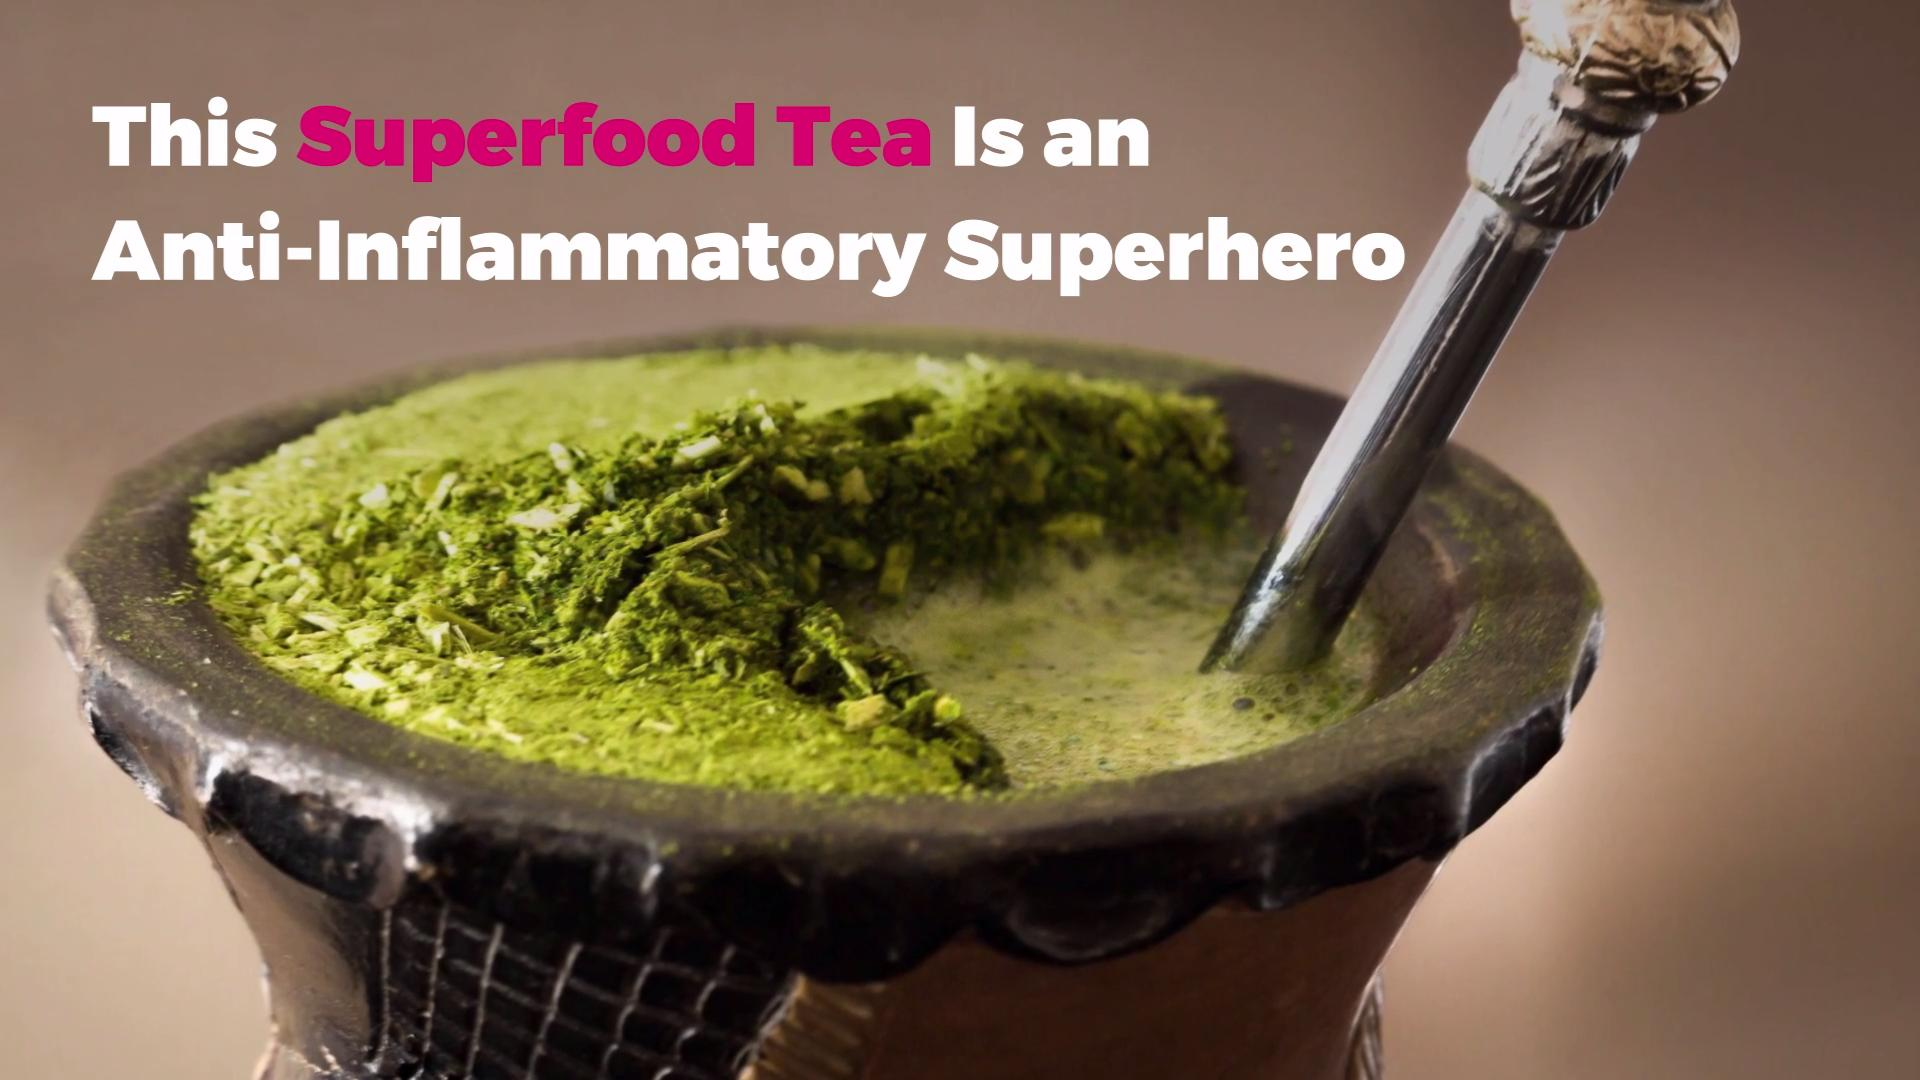 This Superfood Tea Is an Anti-Inflammatory Superhero